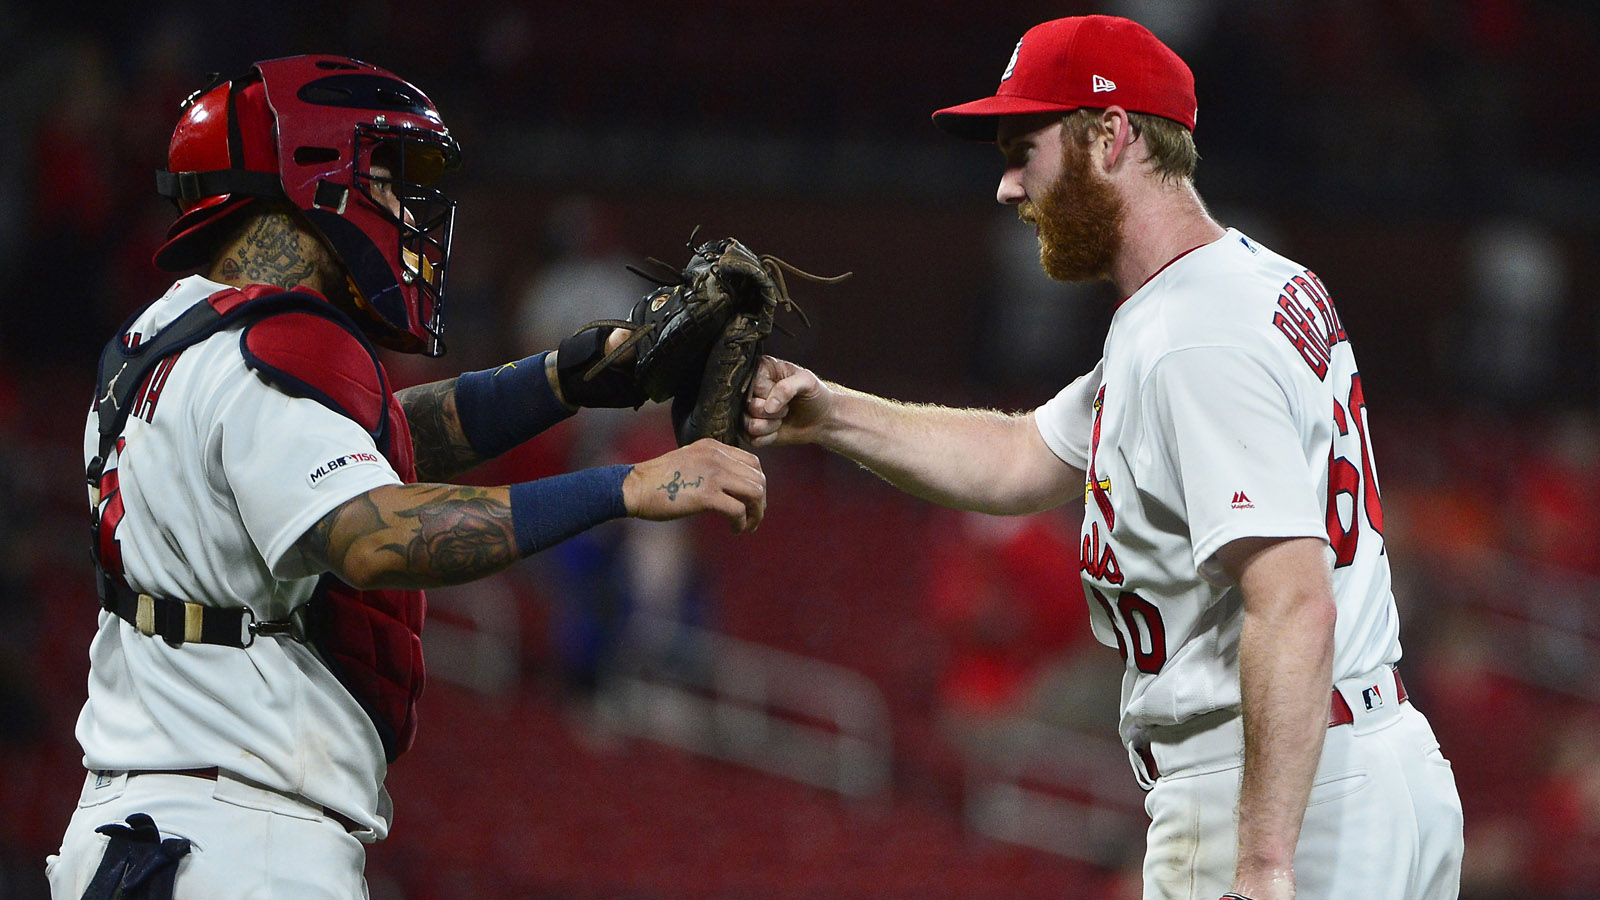 Cardinals activate Brebbia from Paternity List, place Carp on 10-day IL